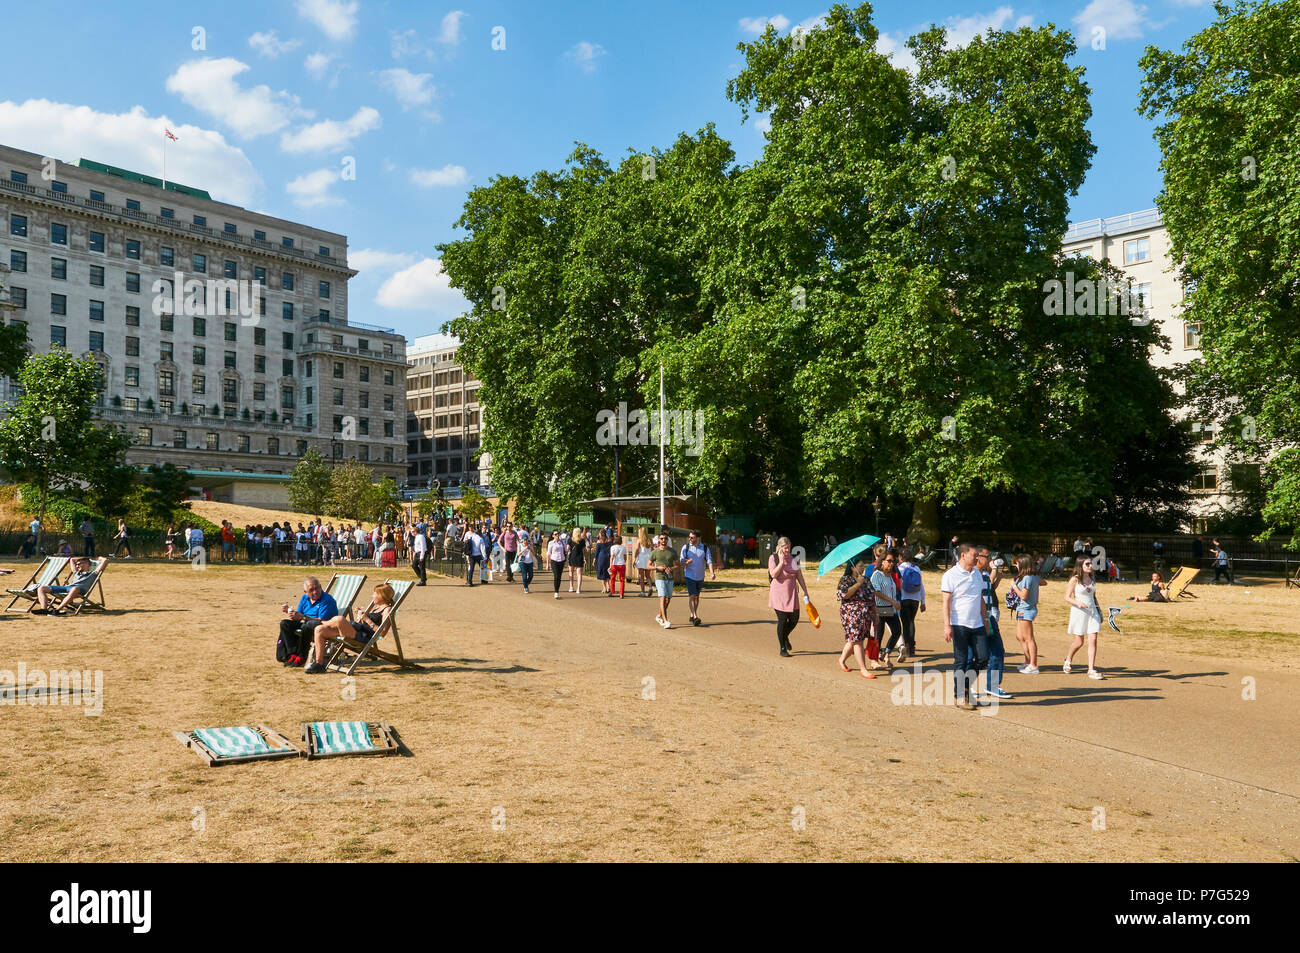 Tourists arriving from Green Park Underground station, walking through a scorched Green Park, London UK, during the July 2018 heatwave - Stock Image